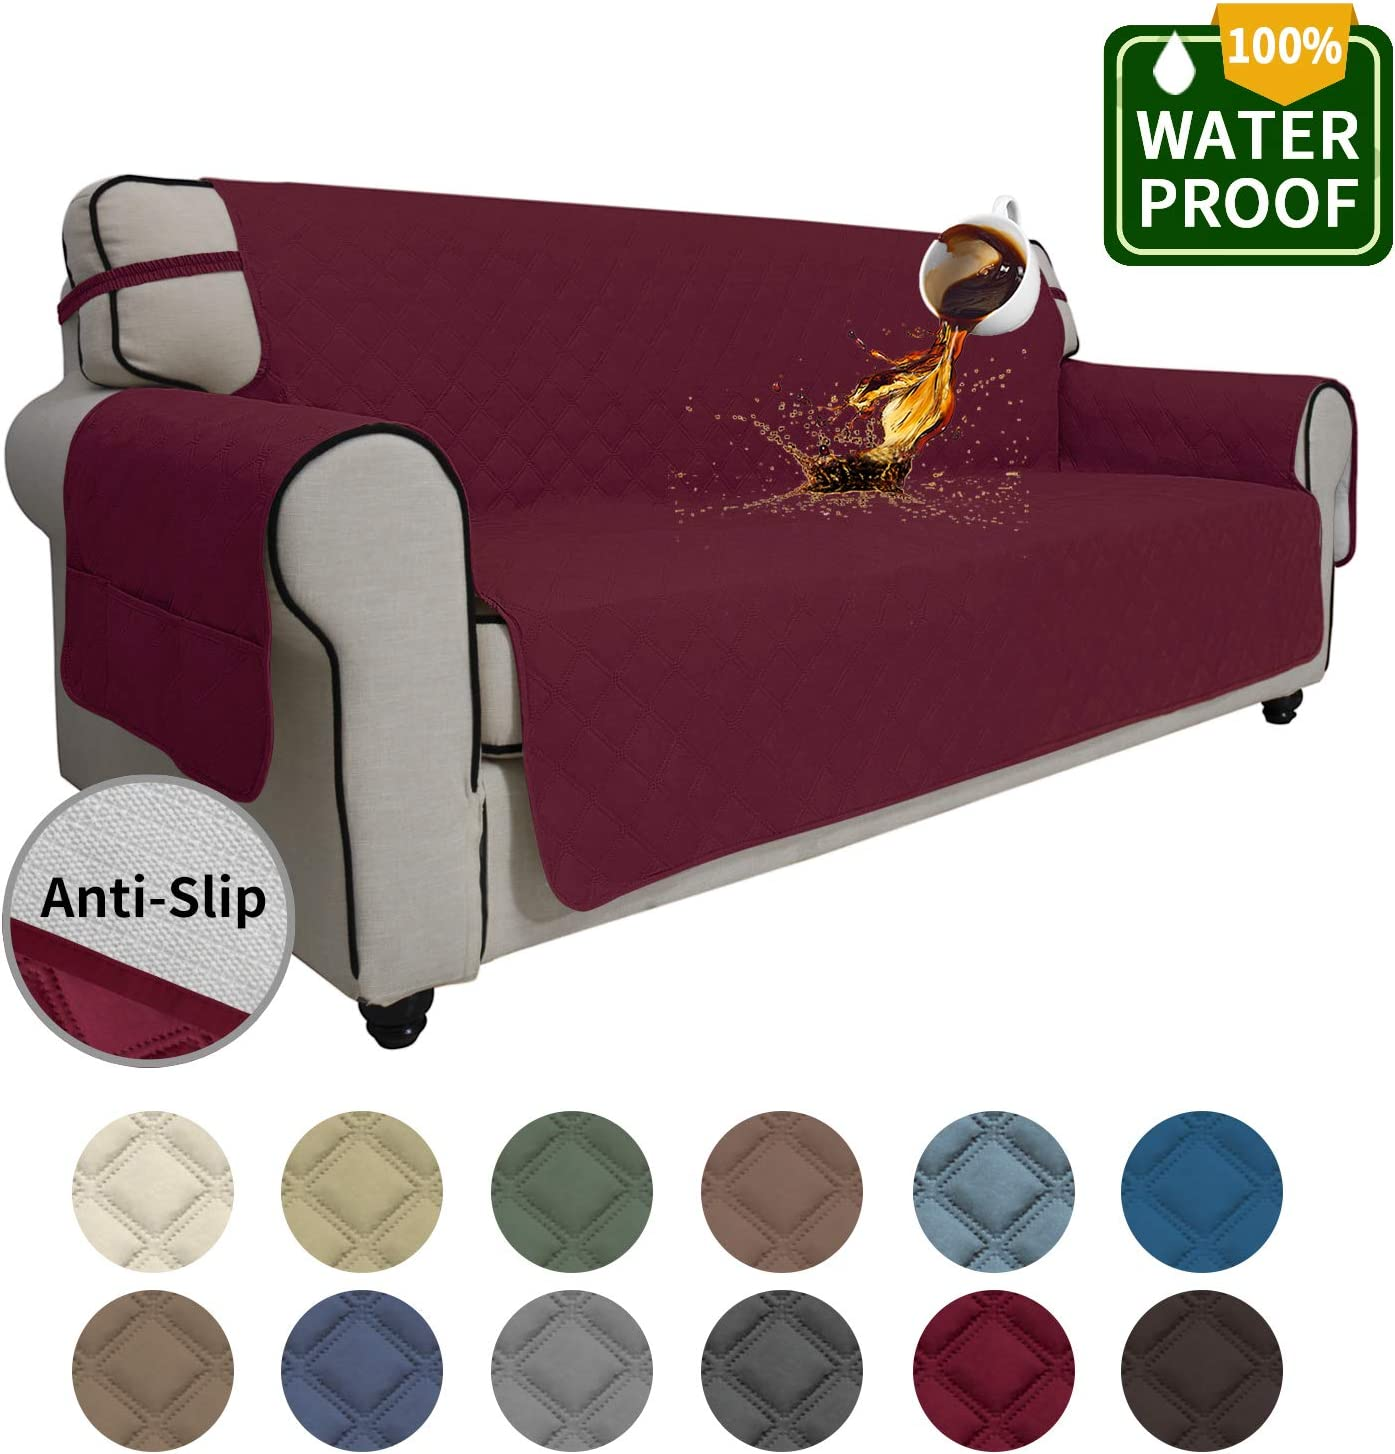 Easy-Going Sofa Slipcover Waterproof Couch Cover Non-Slip Sofa Cover for 3 Cushion Couch Seamless Whole Piece Fabric Furniture Protector for Pets Kids Children Dog Cat(Oversized Sofa, Wine)